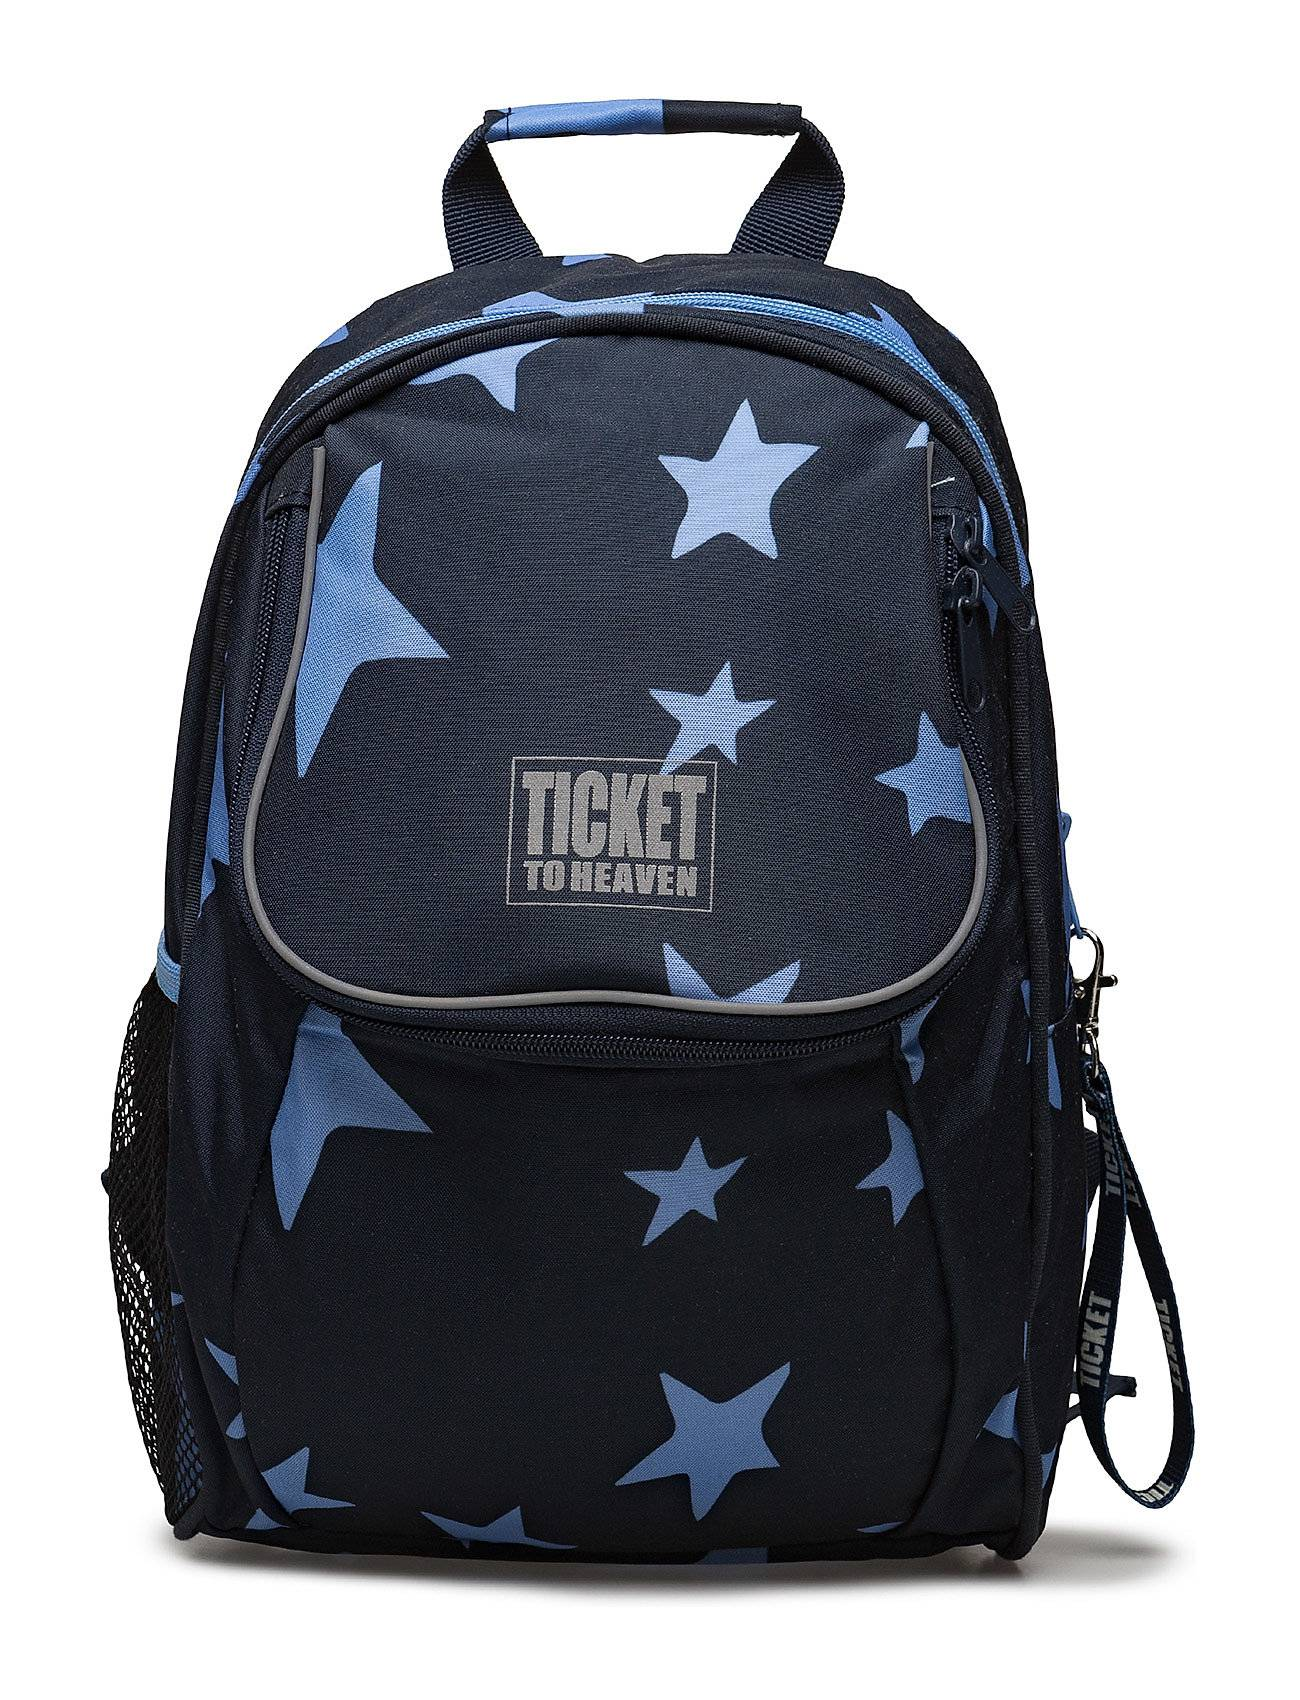 Ticket to Heaven Backpack Beginners Boy